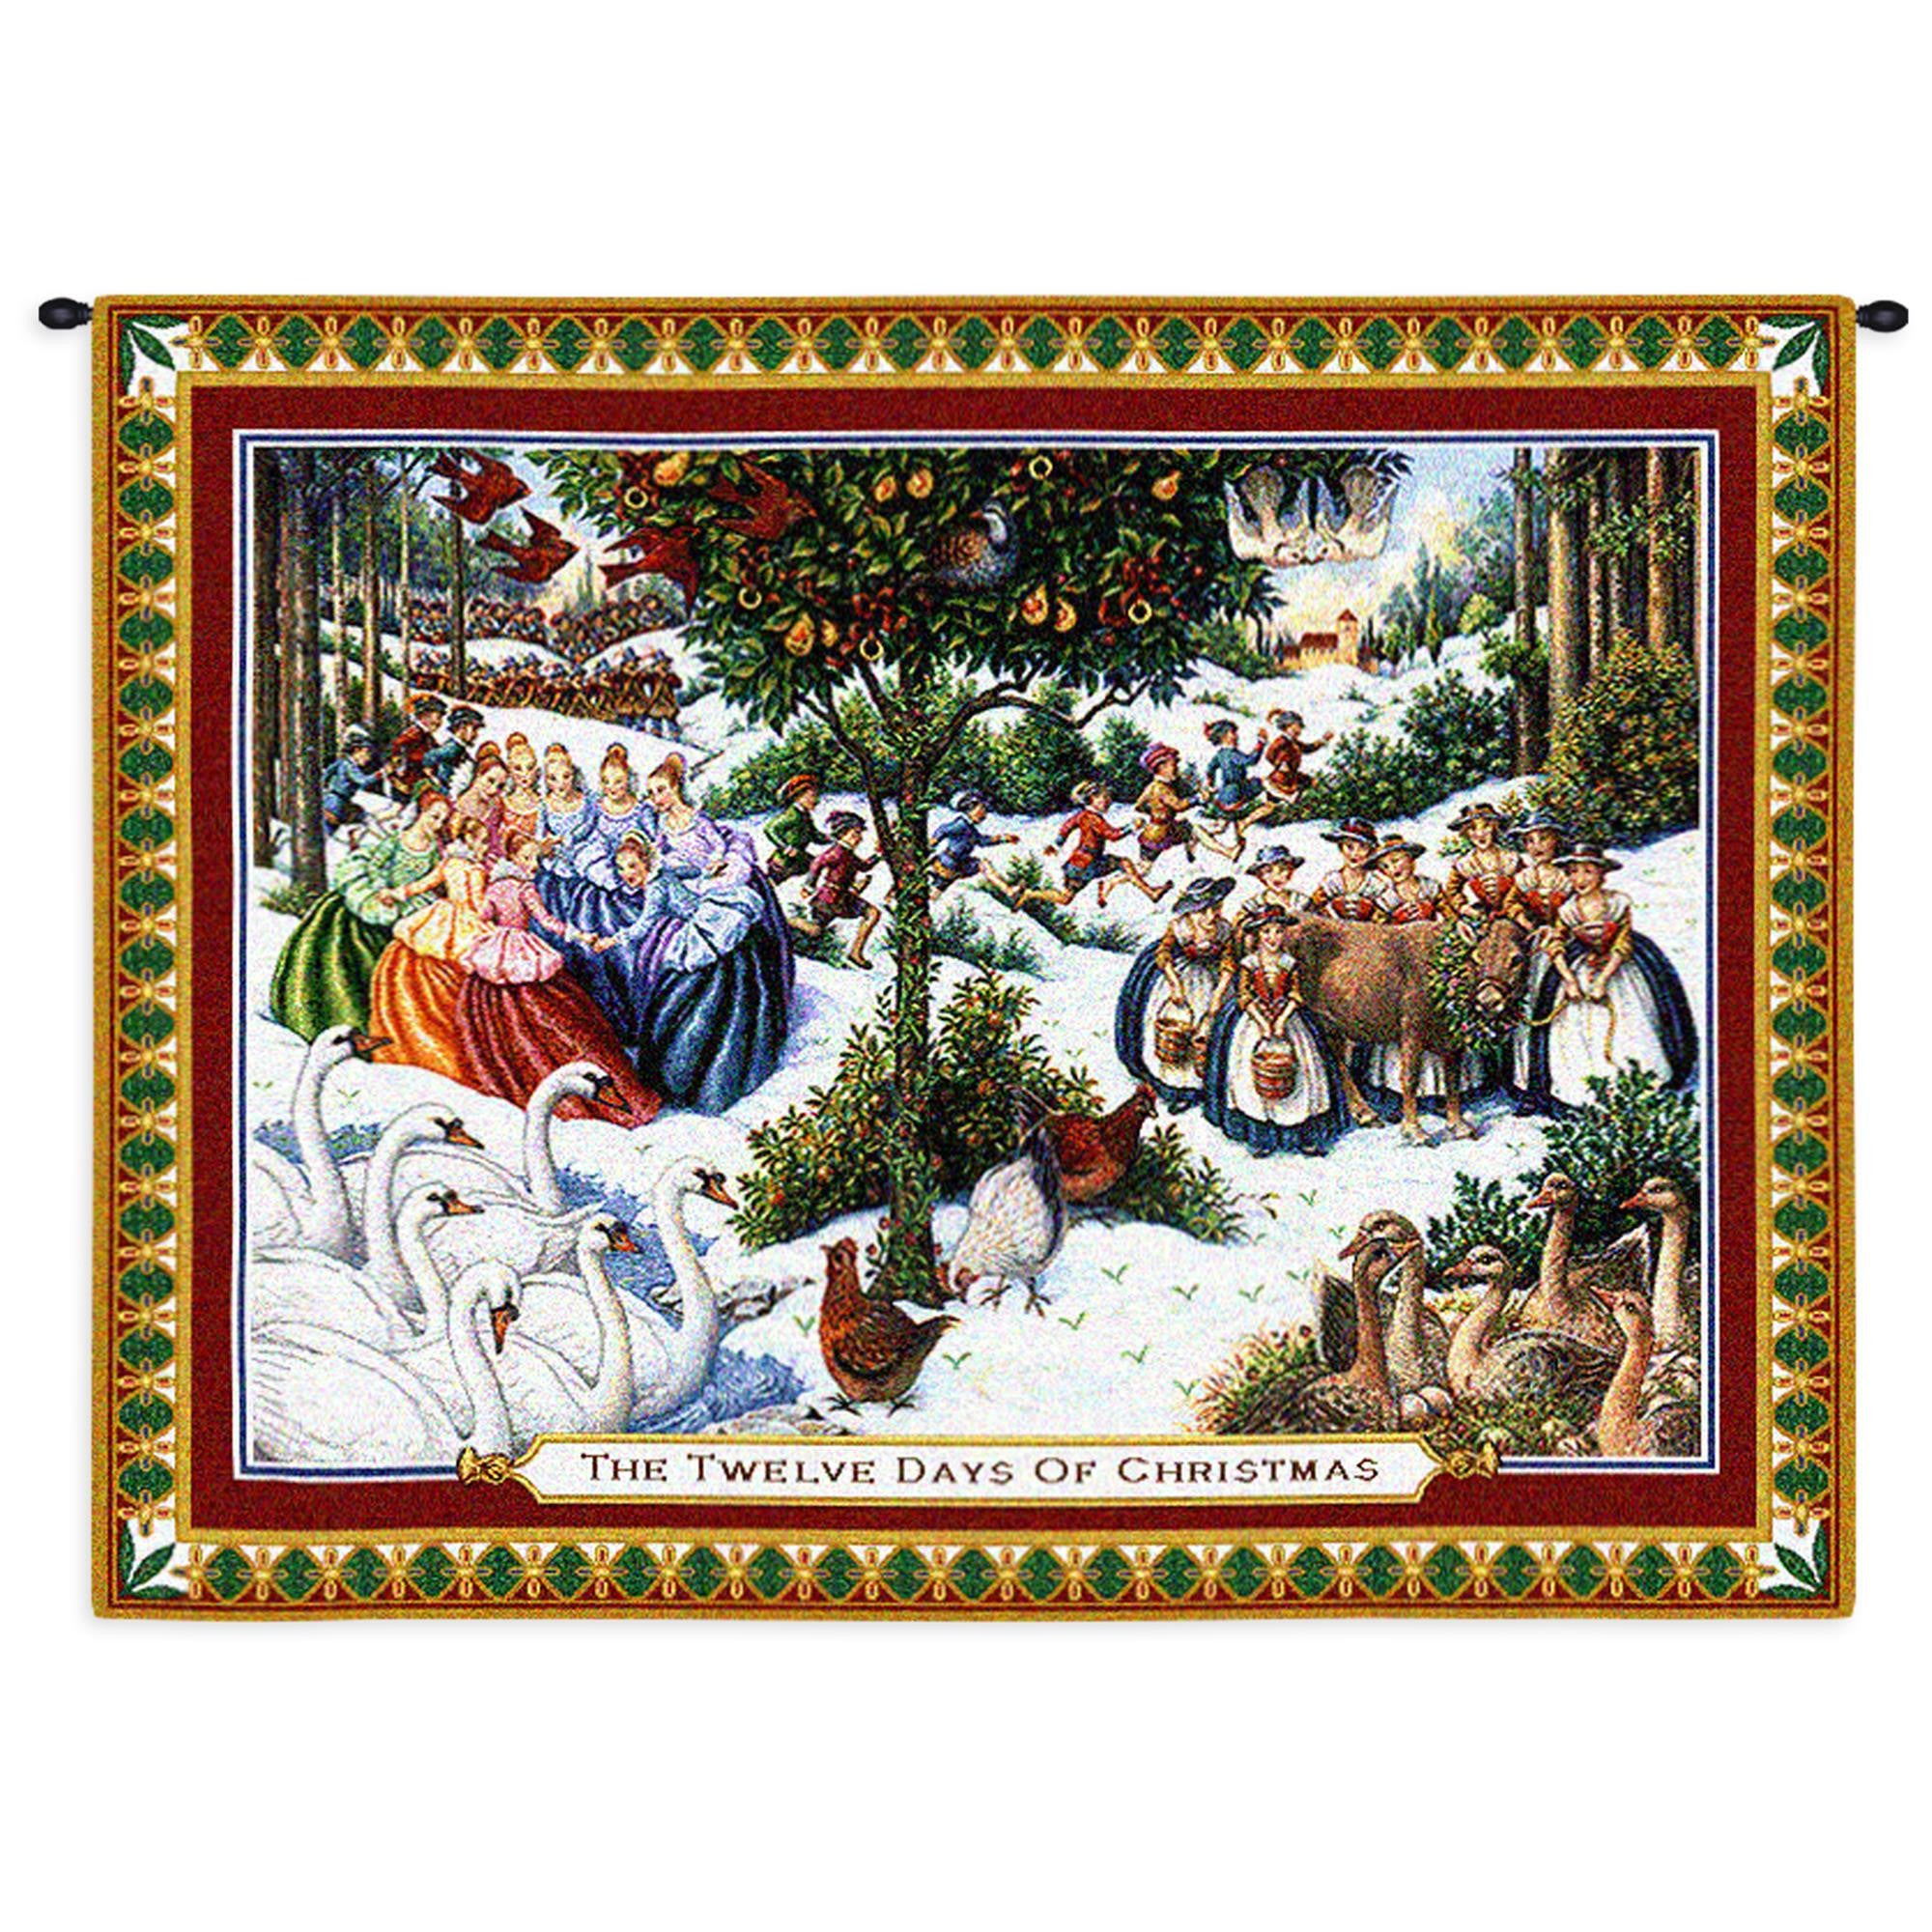 Twelve Days Of Christmas Woven Wall Hanging